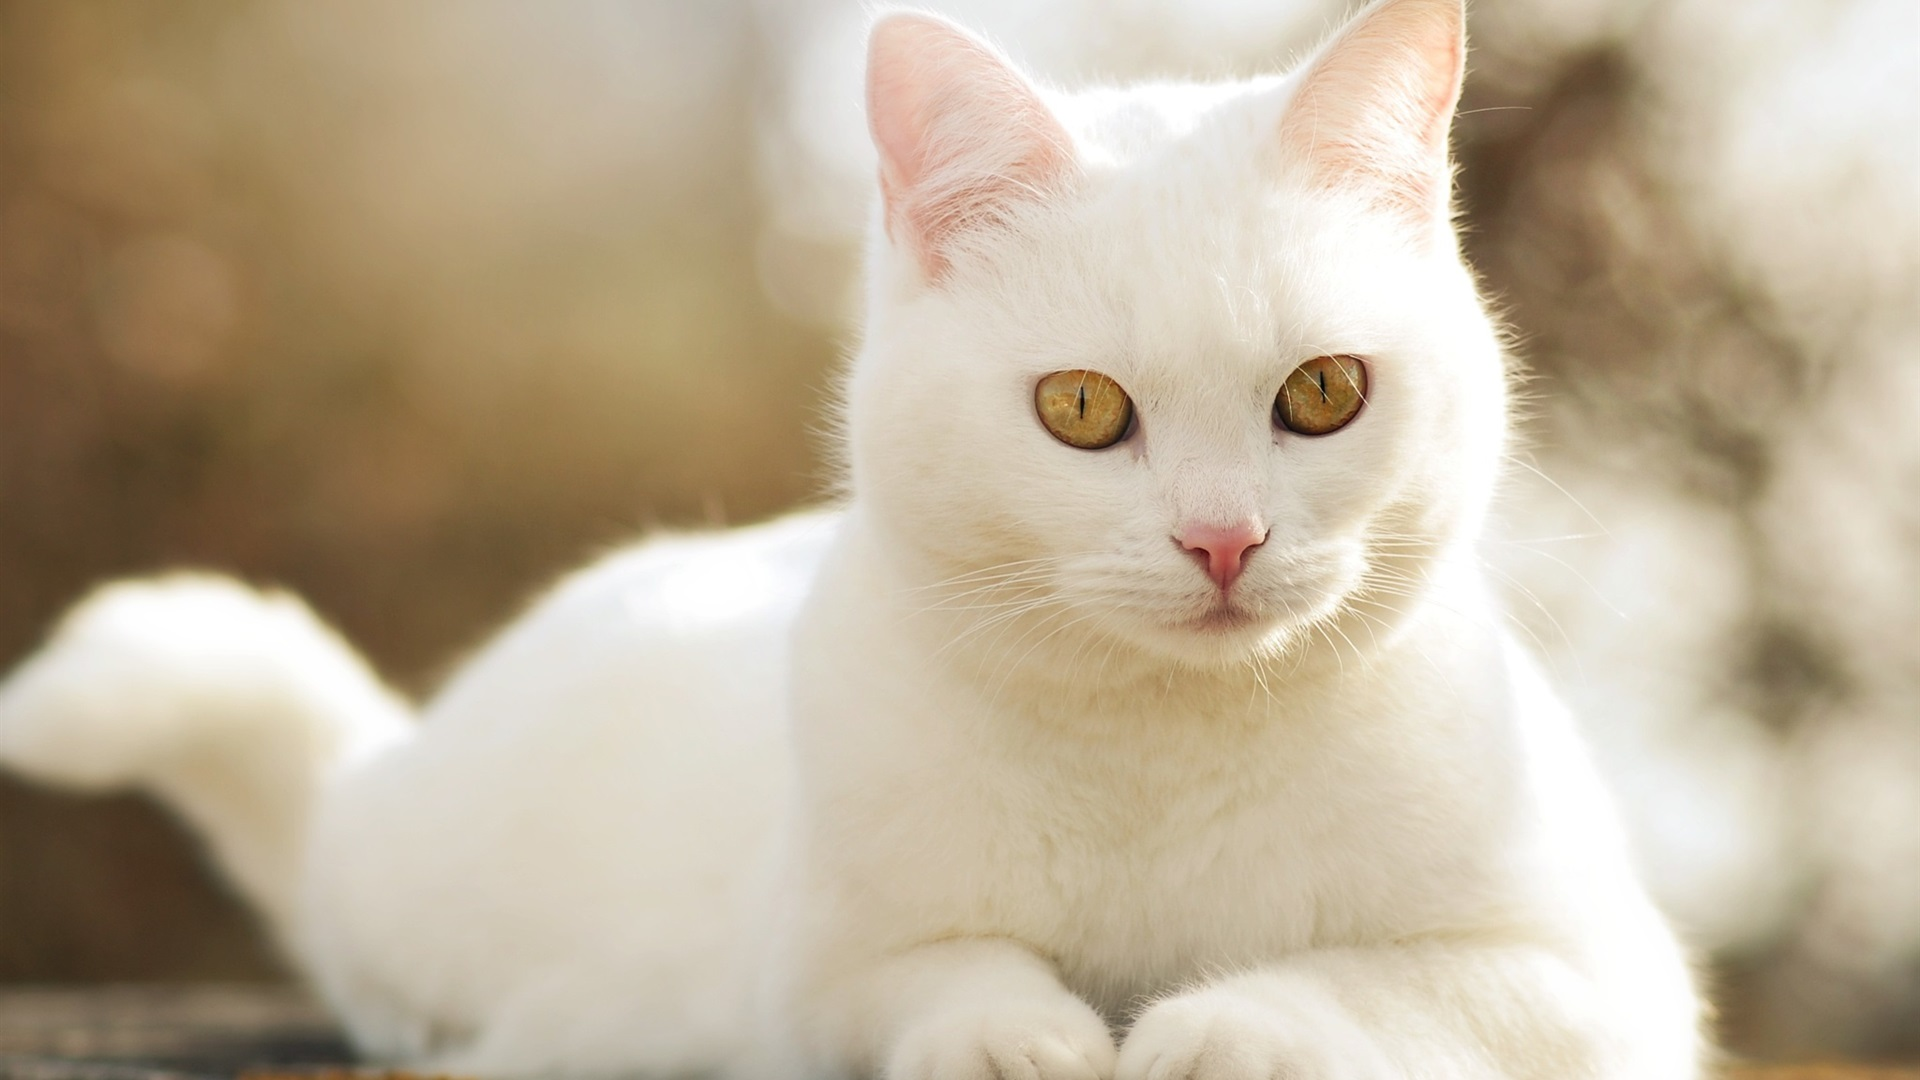 Wallpaper Cute White Cat Front View 1920x1200 Hd Picture Image